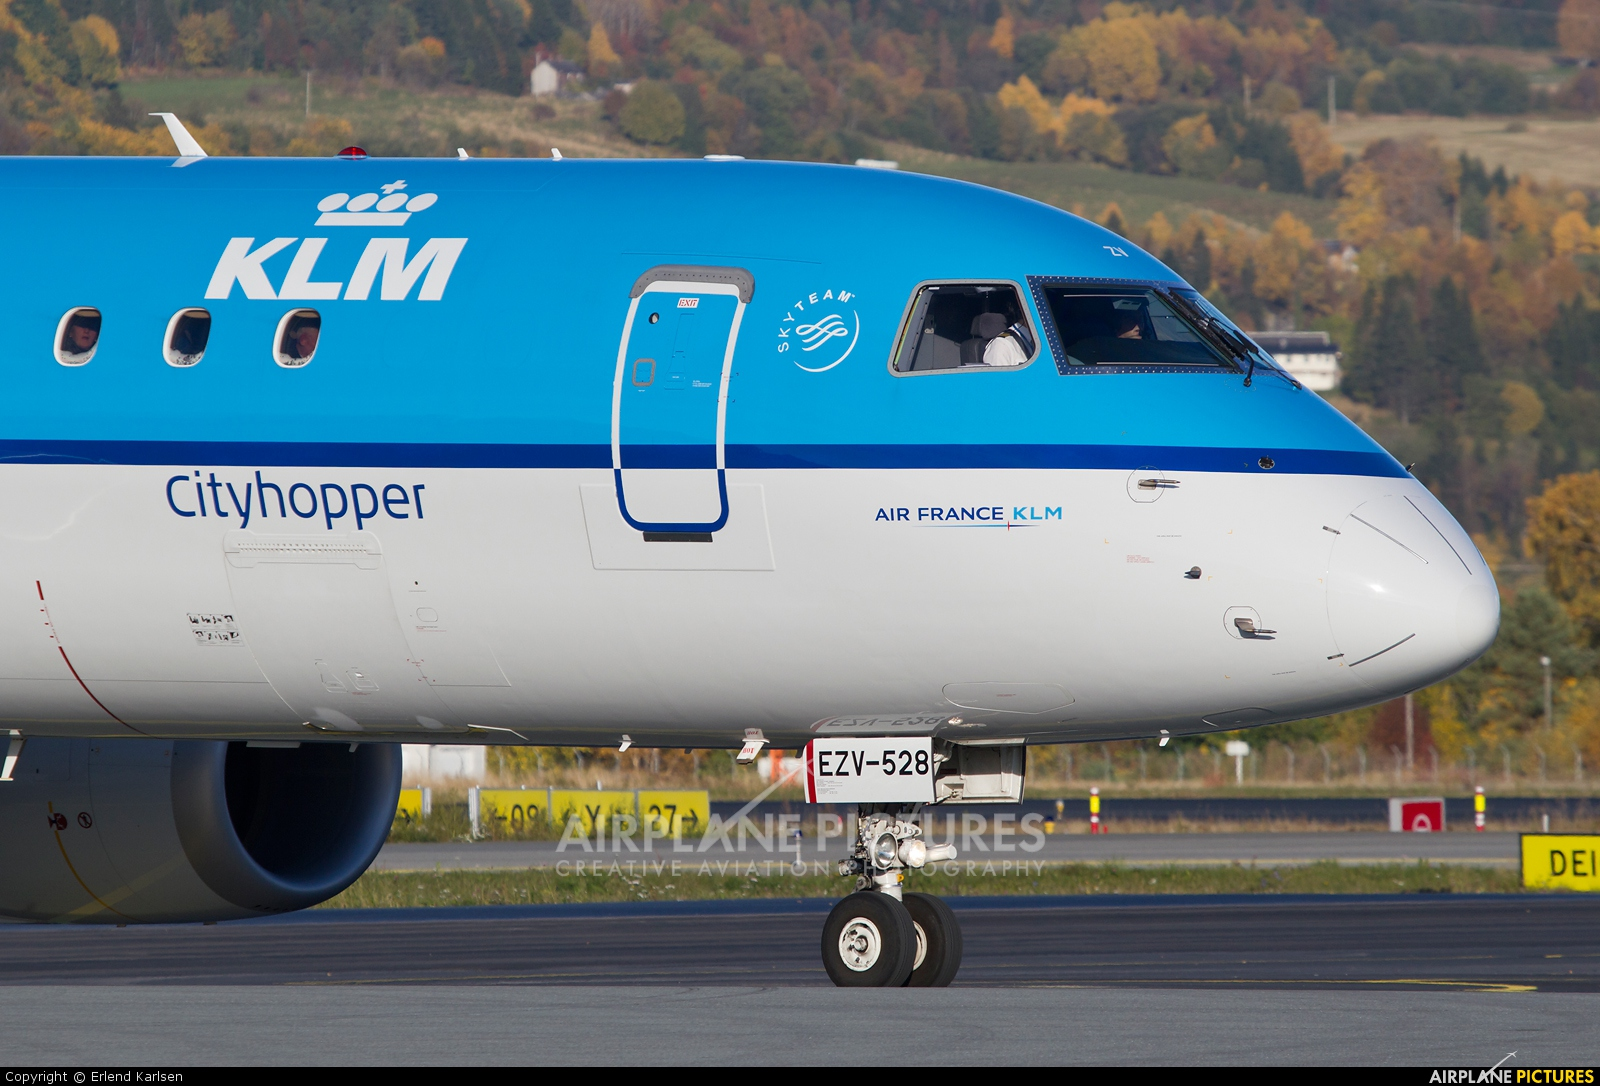 KLM Cityhopper PH-EZV aircraft at Trondheim - Vaernes